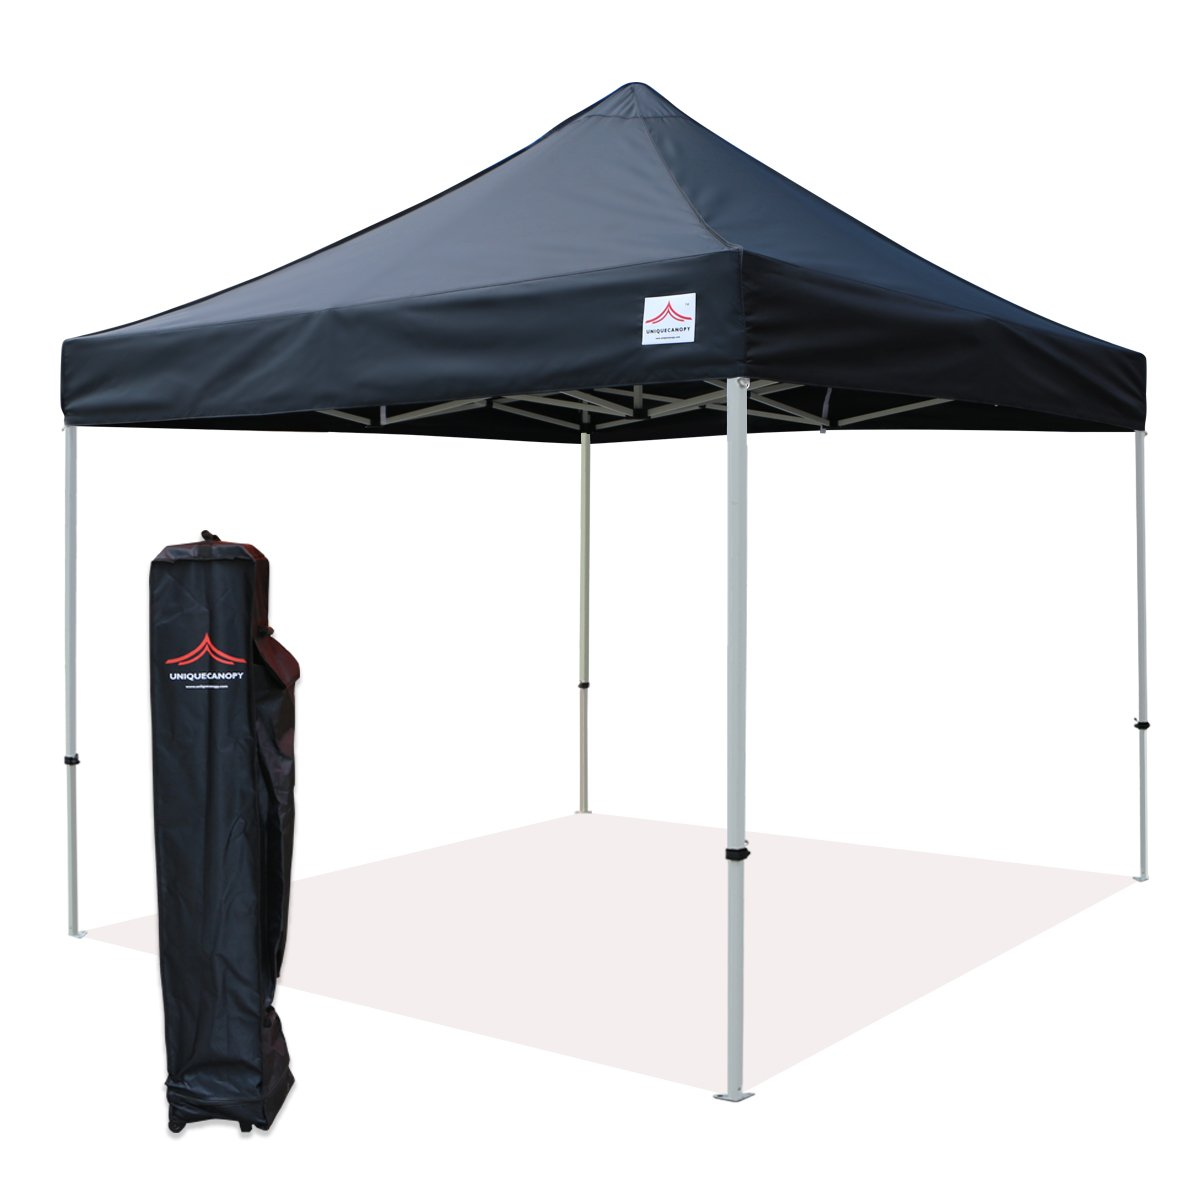 UNIQUECANOPY 10x10 Ez Pop up Canopy Tents for Parties Outdoor Portable Instant Folded Commercial Popup Shelter, with Wheeled Carrying Bag Black